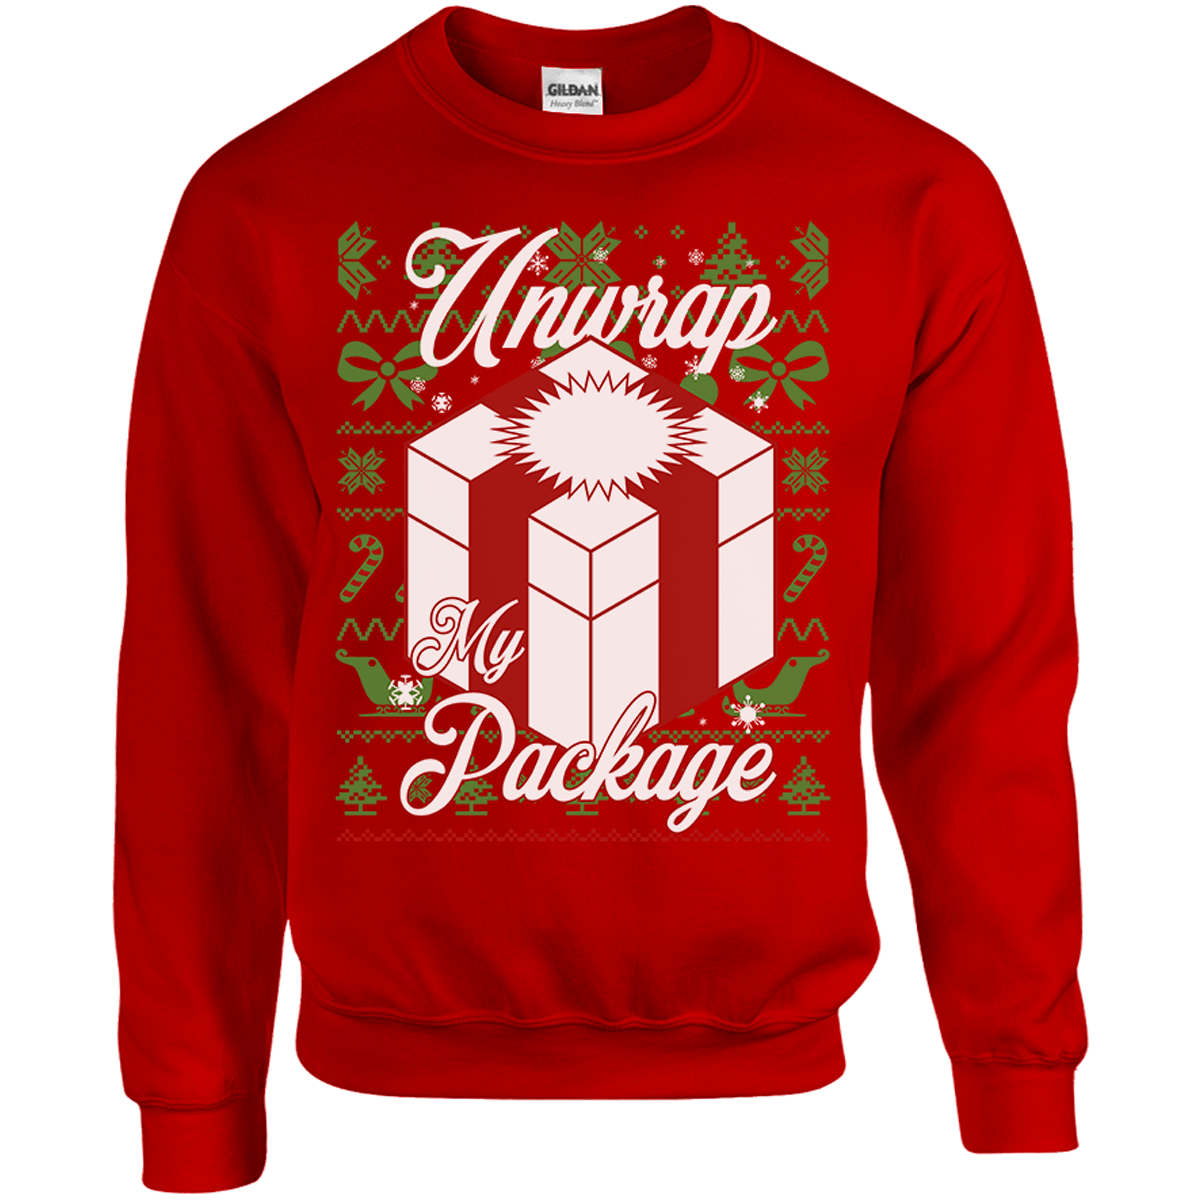 Unwrap My Package Ugly Christmas Sweater